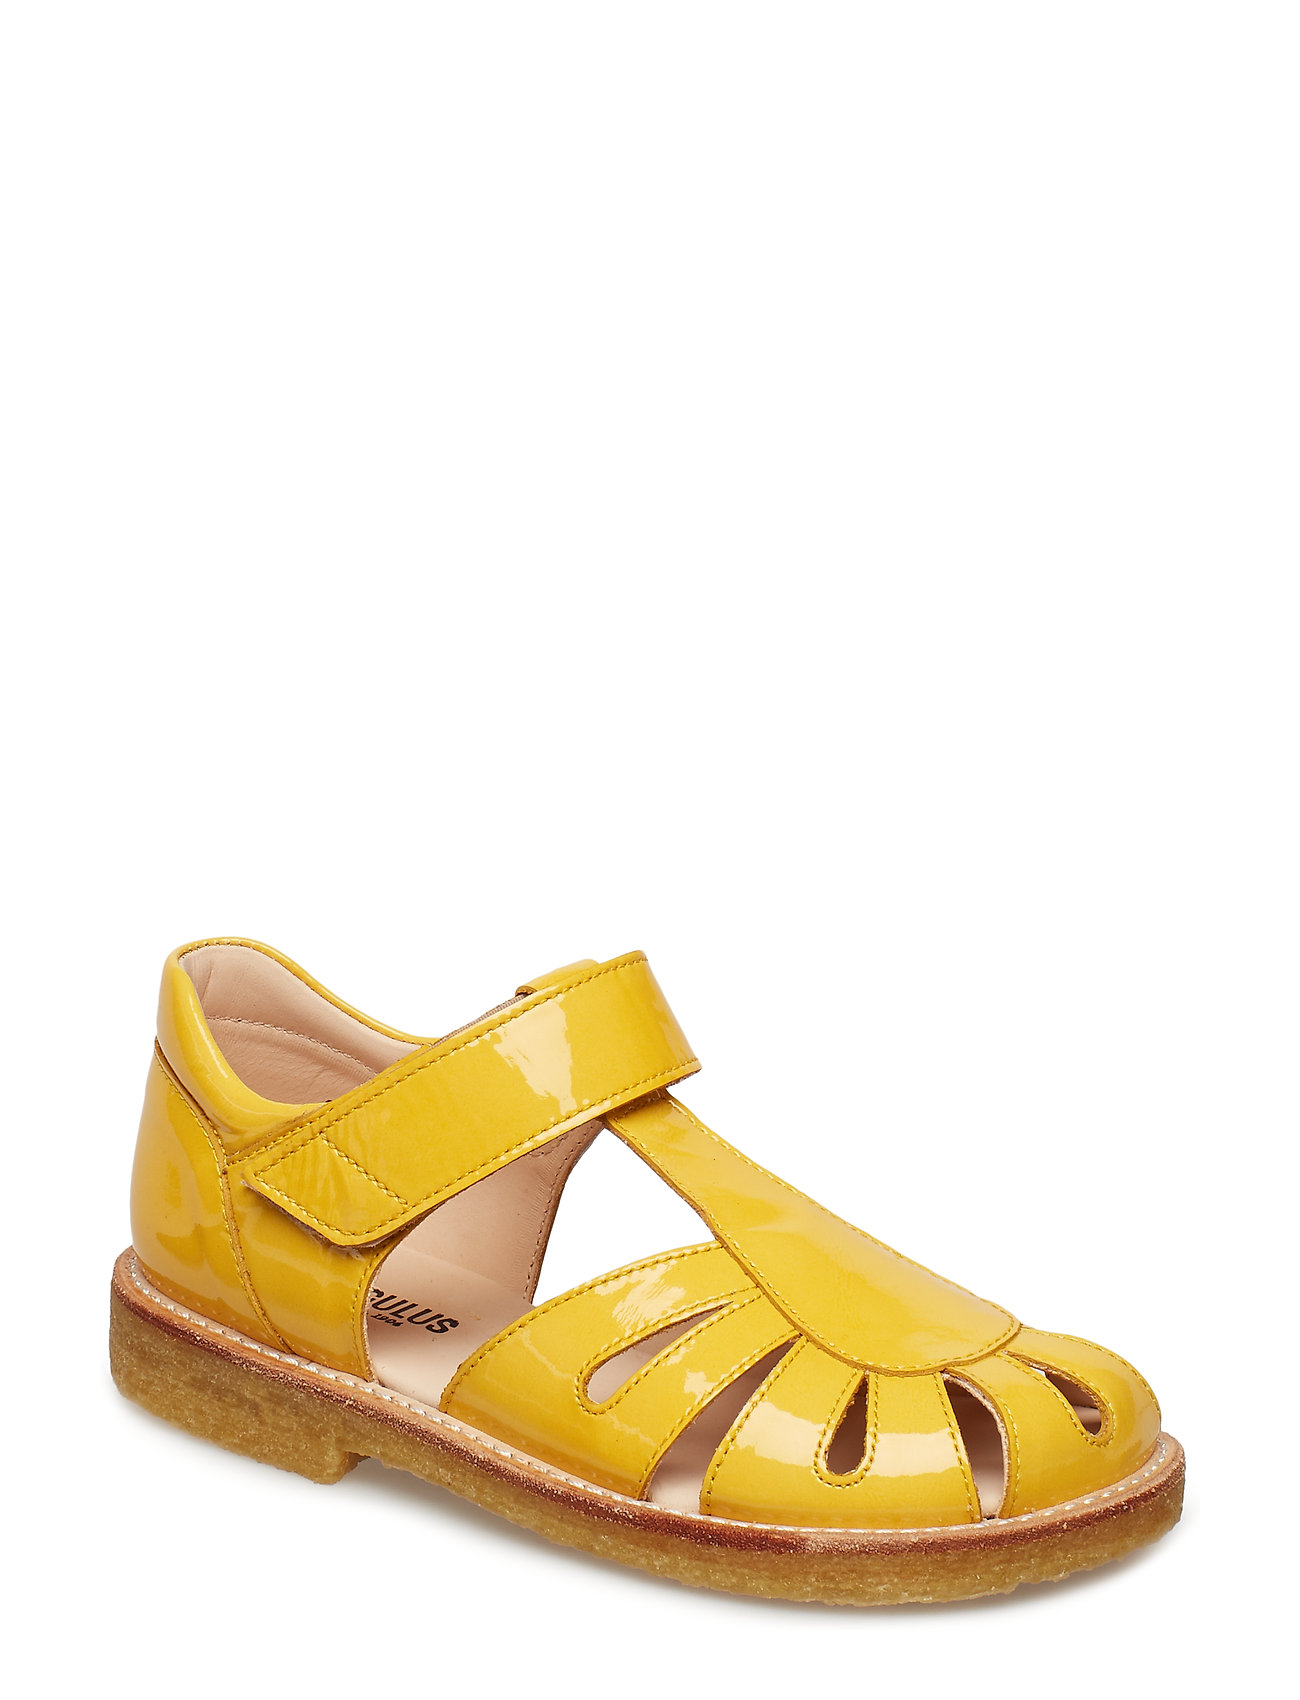 ANGULUS Sandals - flat - closed toe -  - 2339 YELLOW